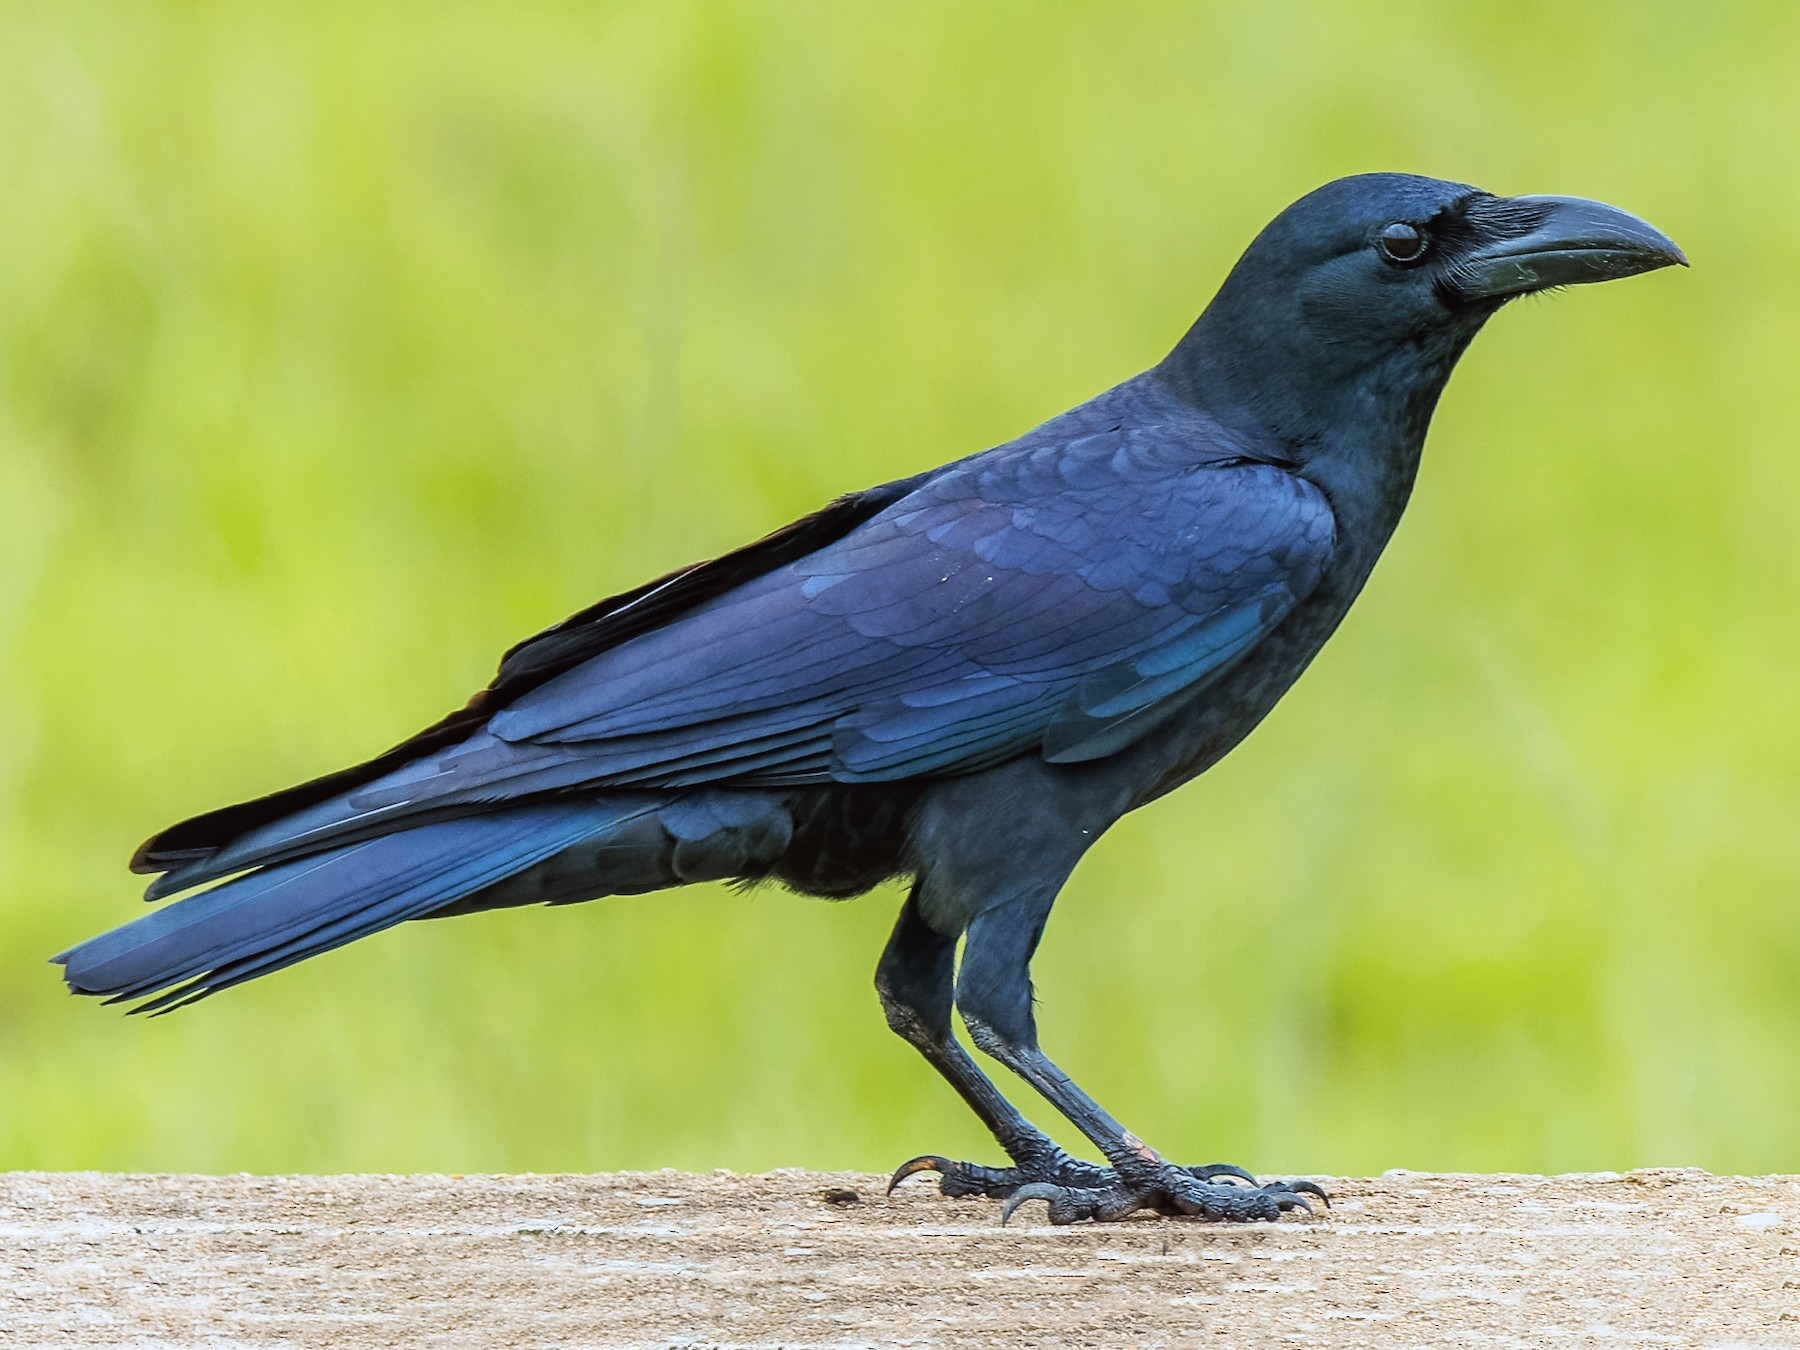 Large-billed Crow - Amit Kher